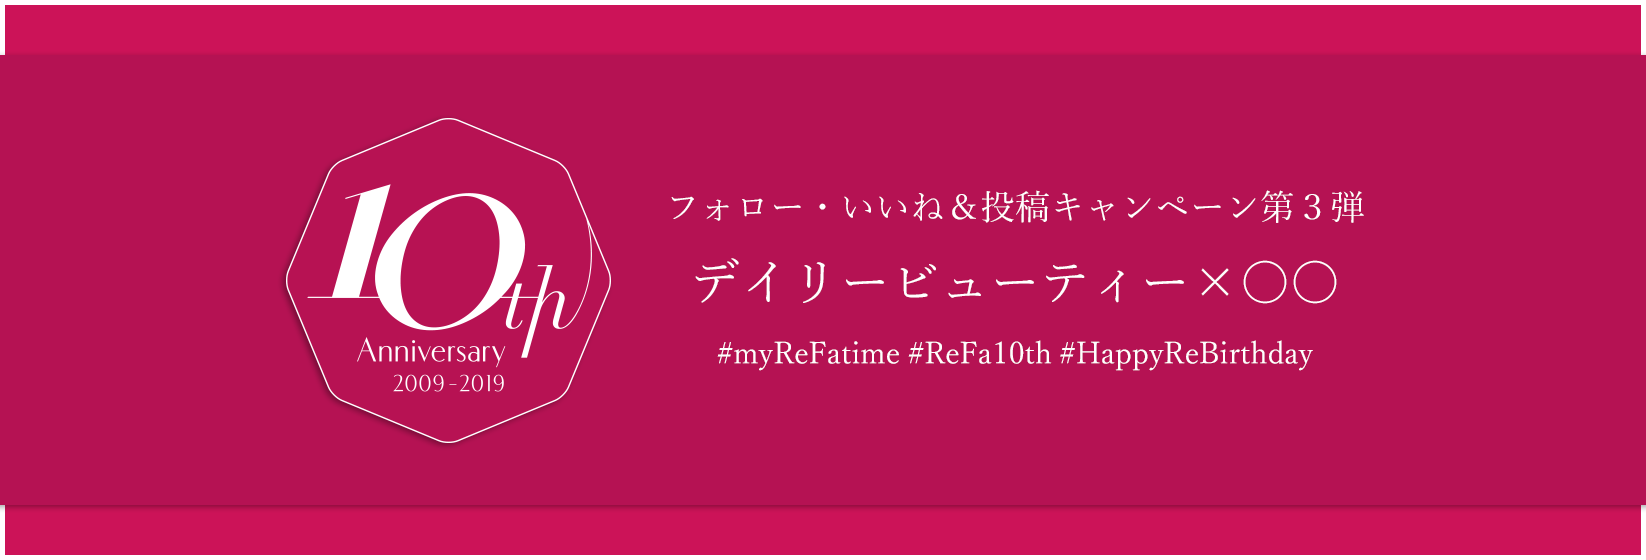 ReFa 10th anniversary